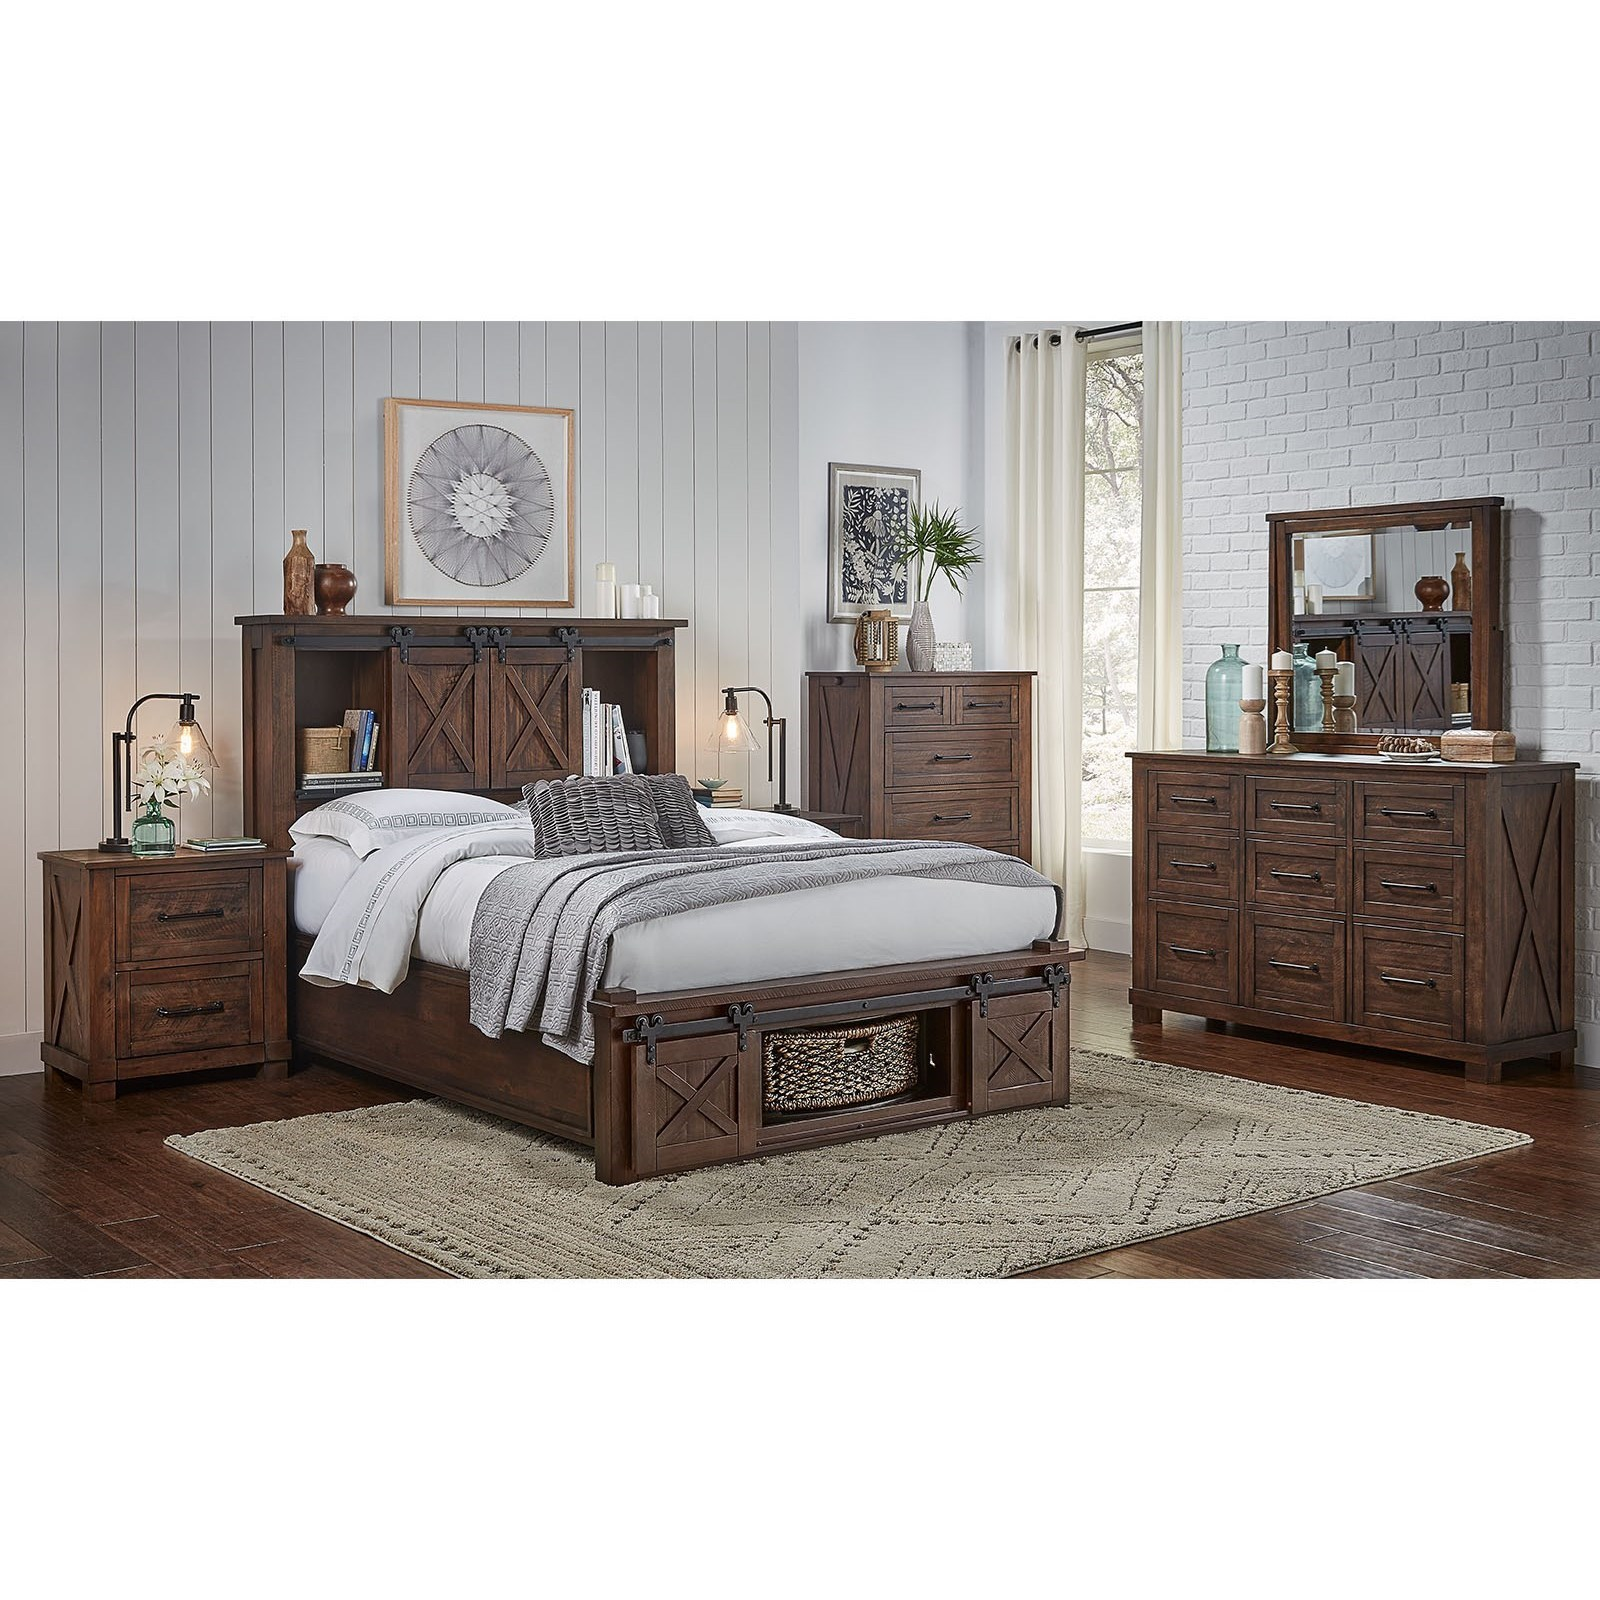 Sun Valley Queen Bedroom Group by AAmerica at Wilson's Furniture